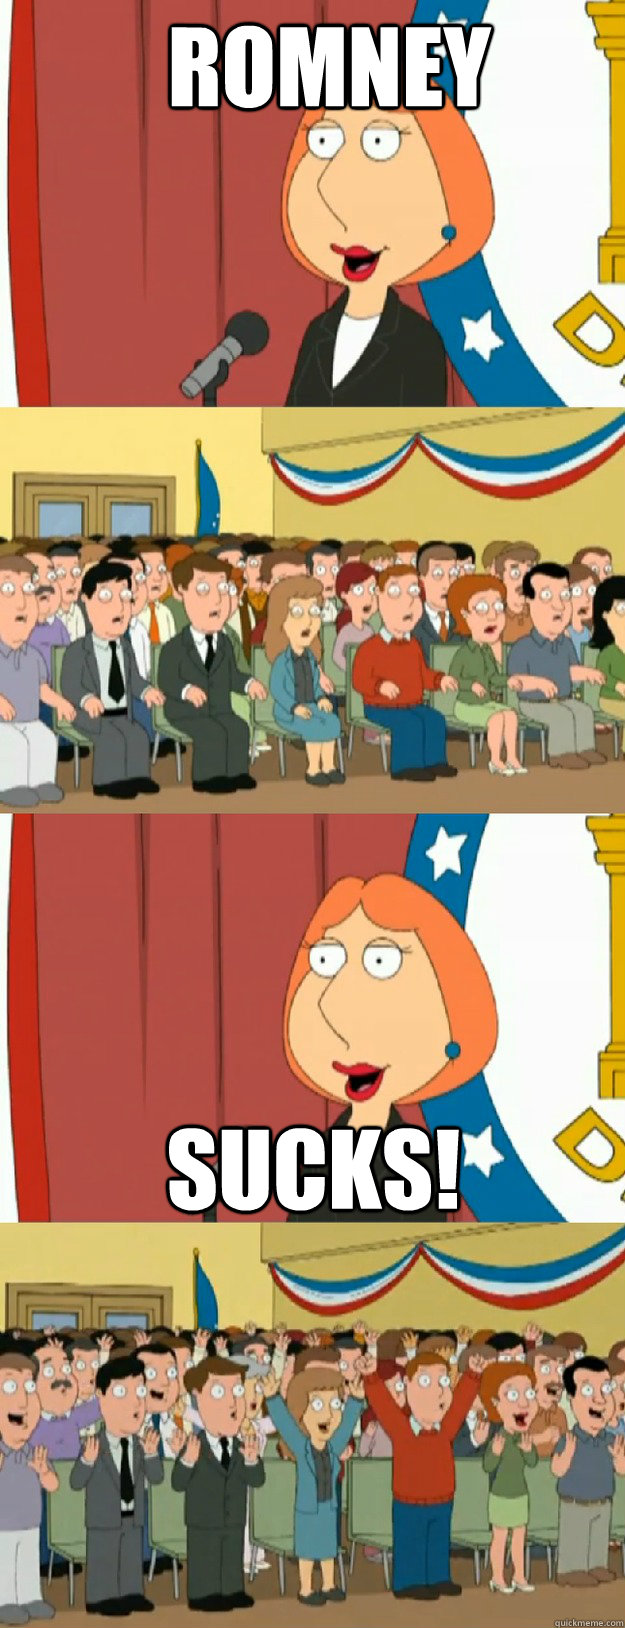 The In-App Purchase Inspector - Family Guy: The Quest for